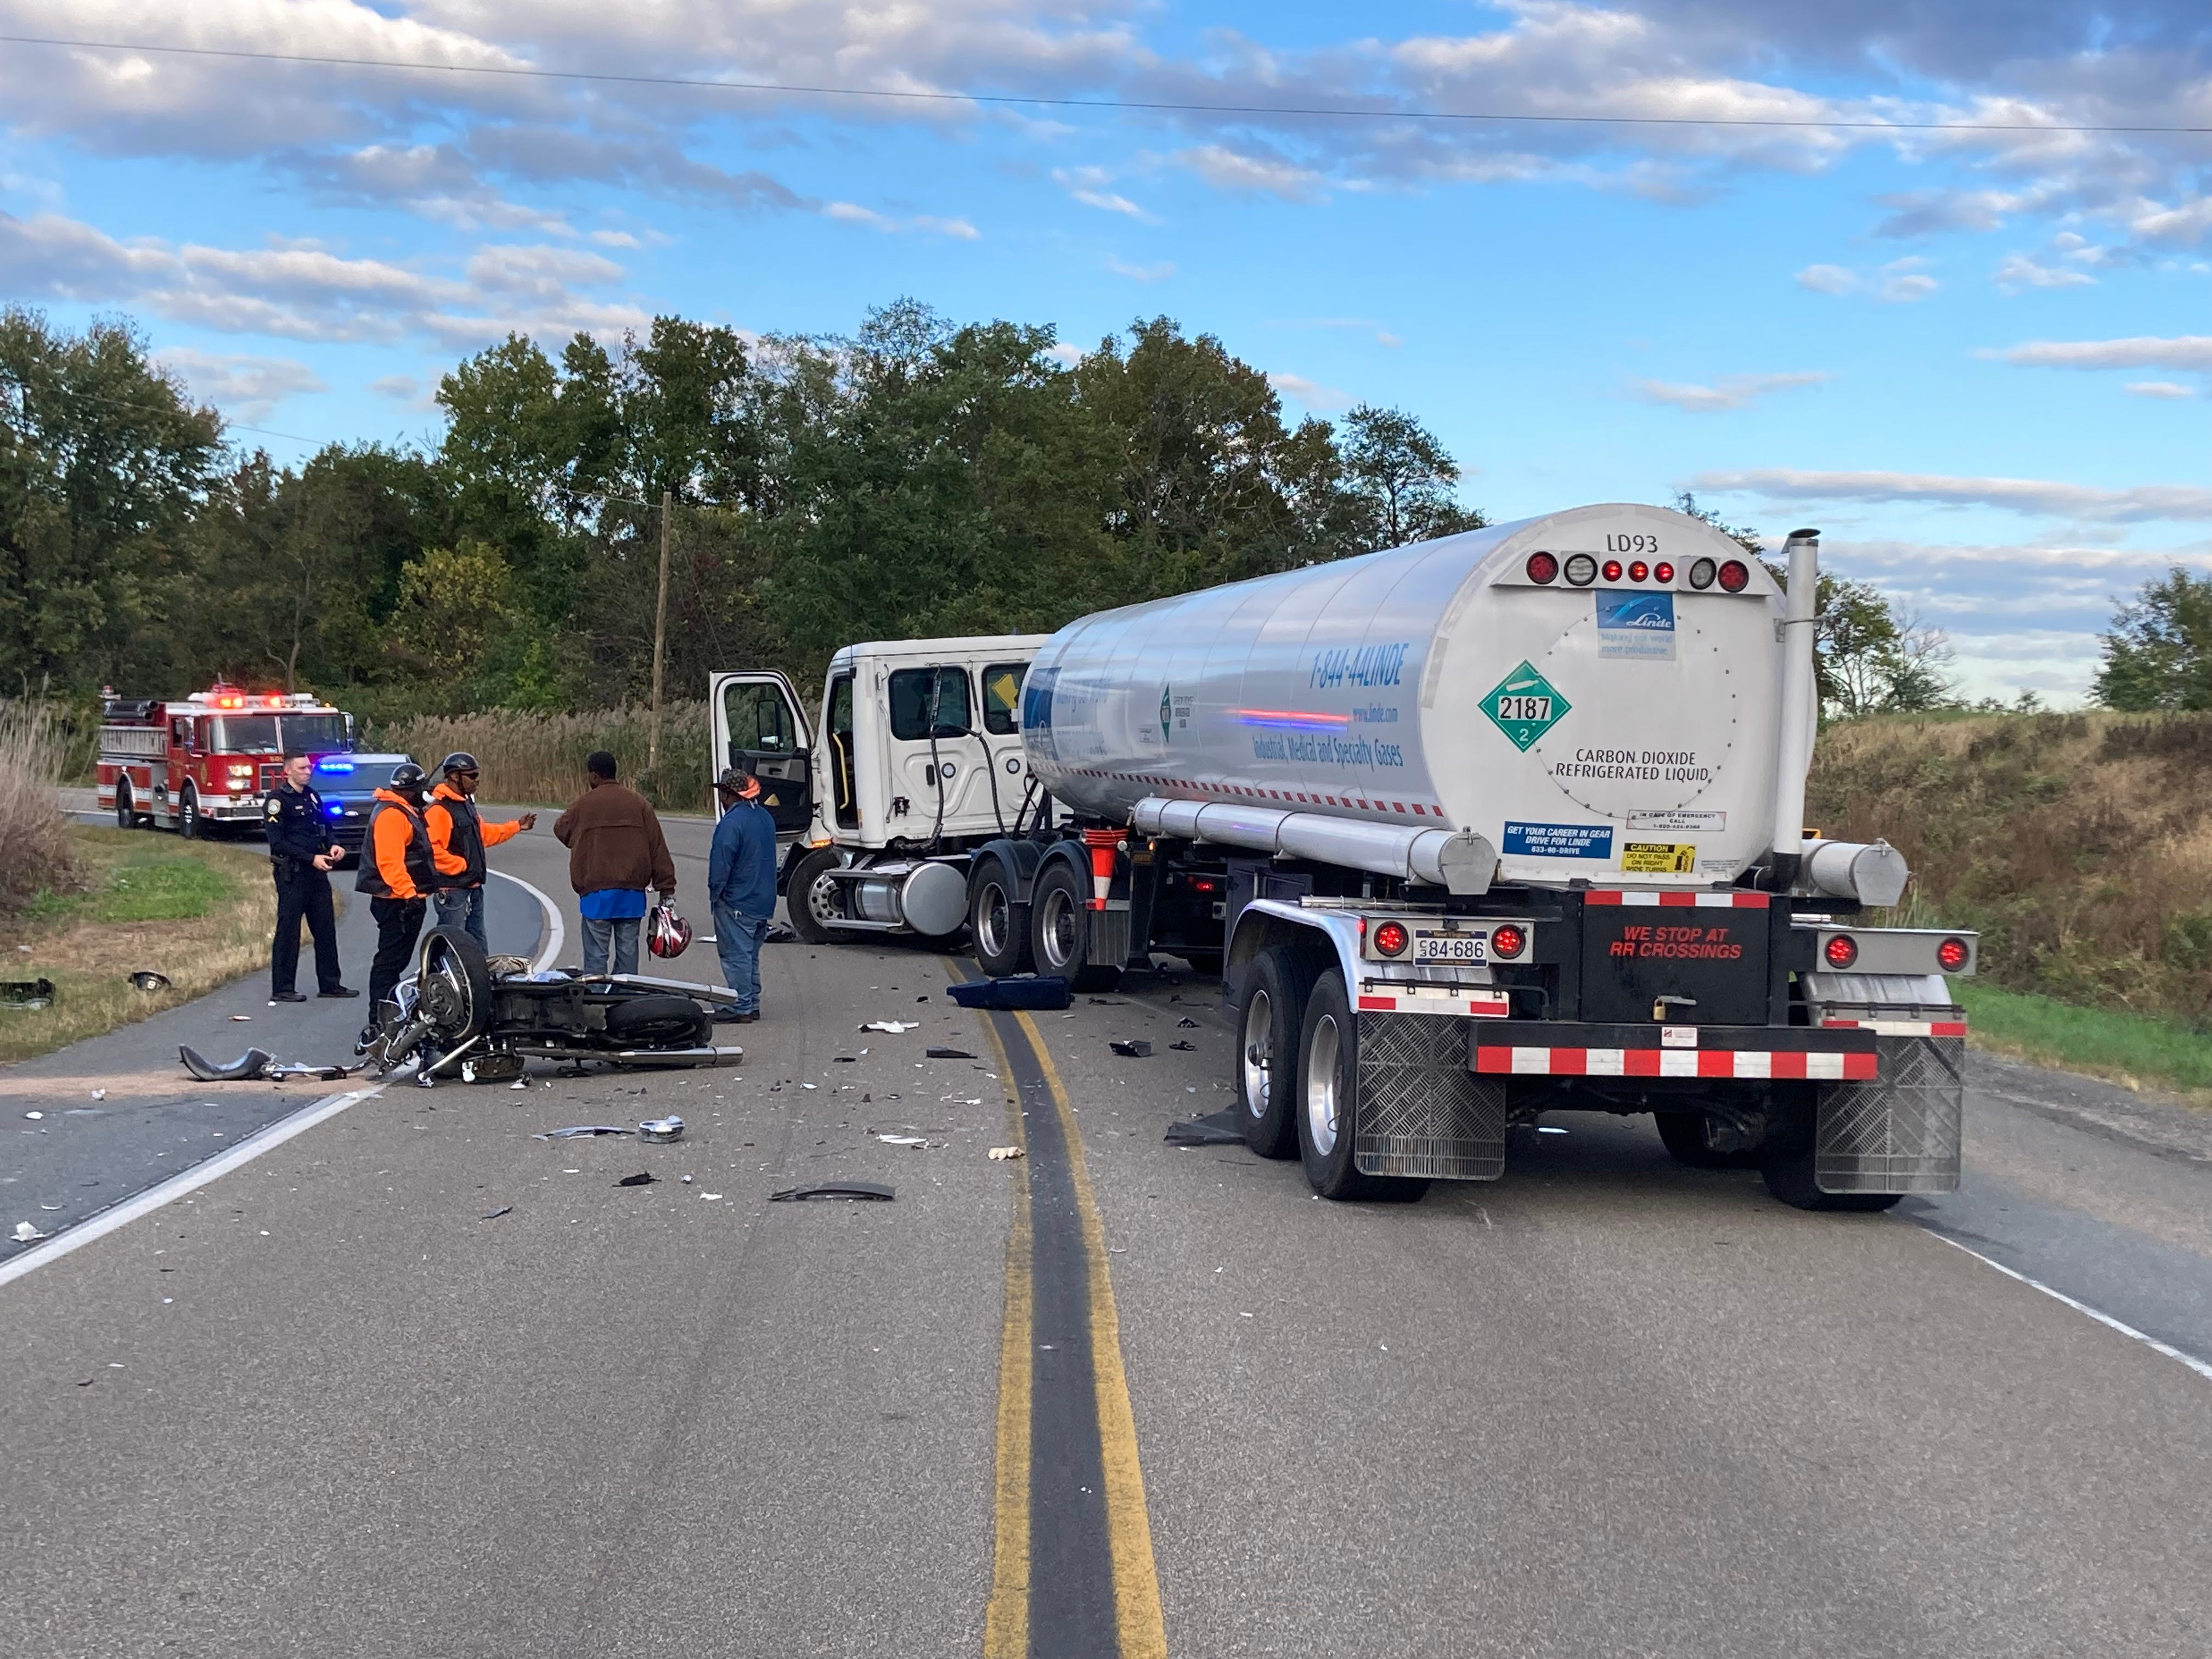 2 motorcyclists killed in Sunday crashes, marking 4th and 5th bikers to die since Friday